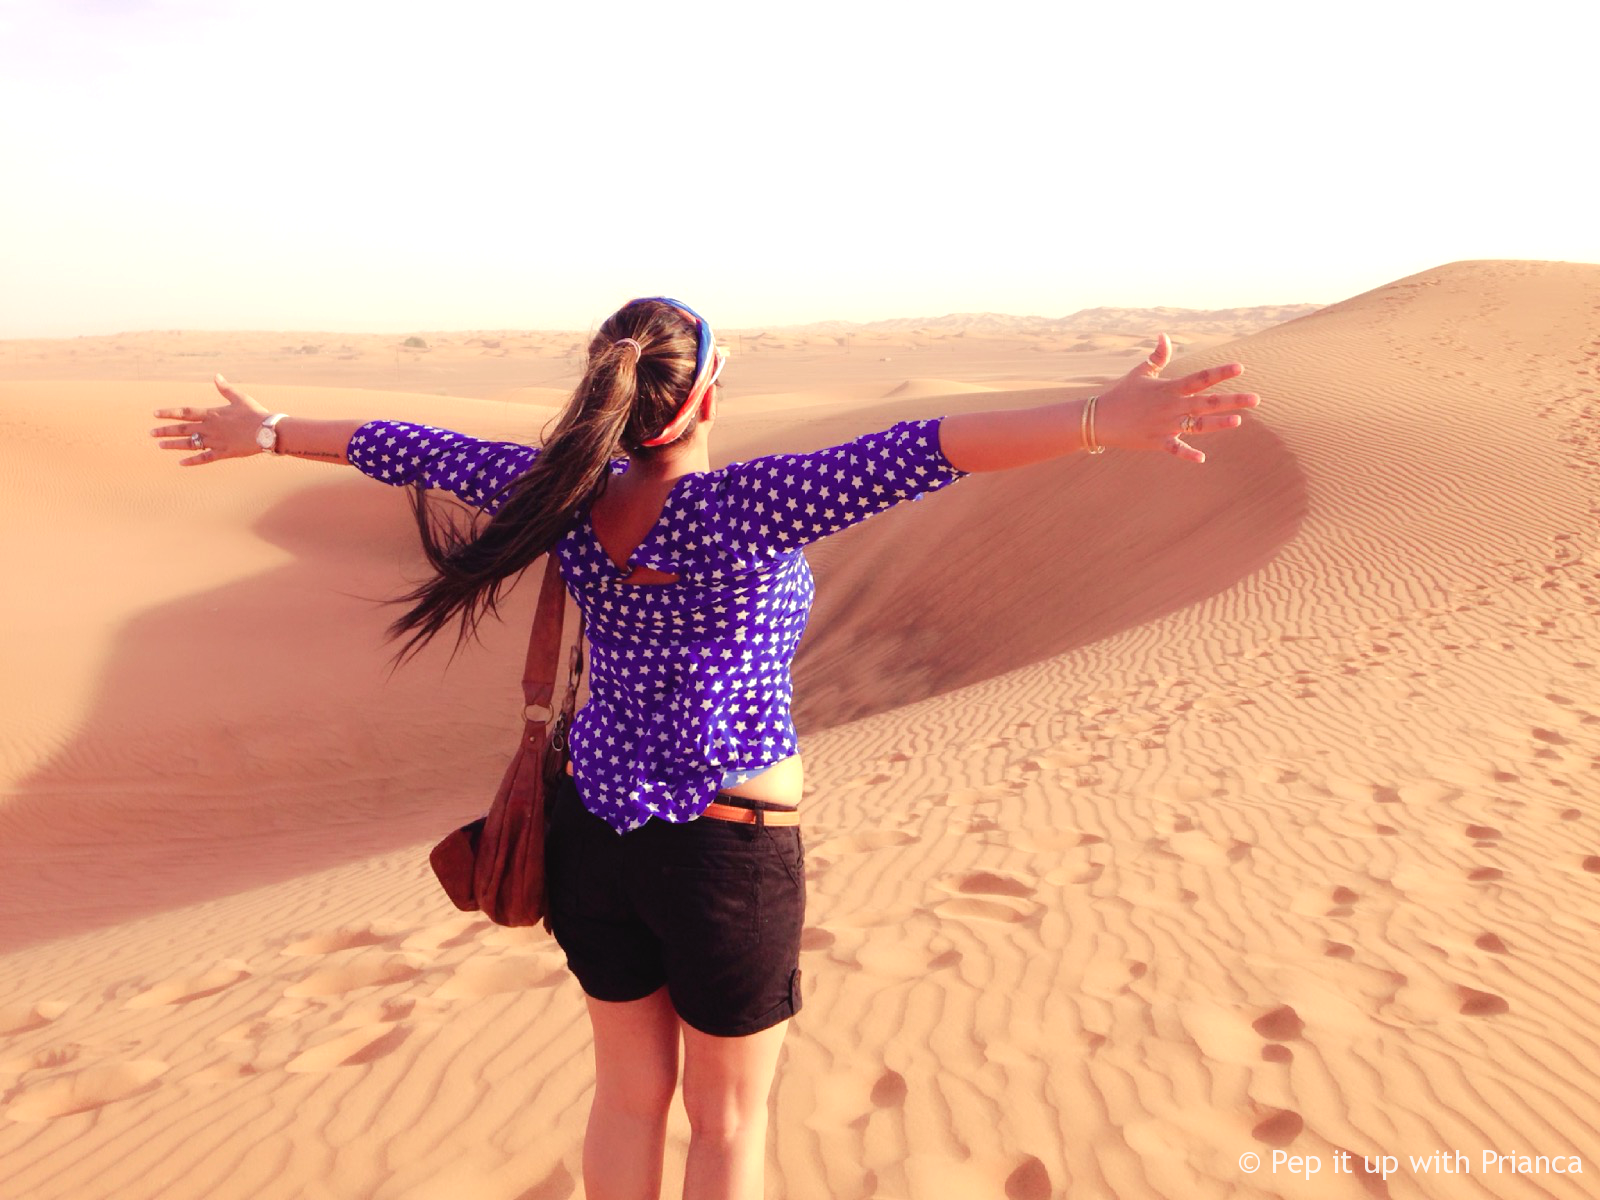 sunset dubai desert pep it up with prianca - Travel to the Desert to 'Desert' Yourself & Find your Soul - Magnificent Dubai Desert